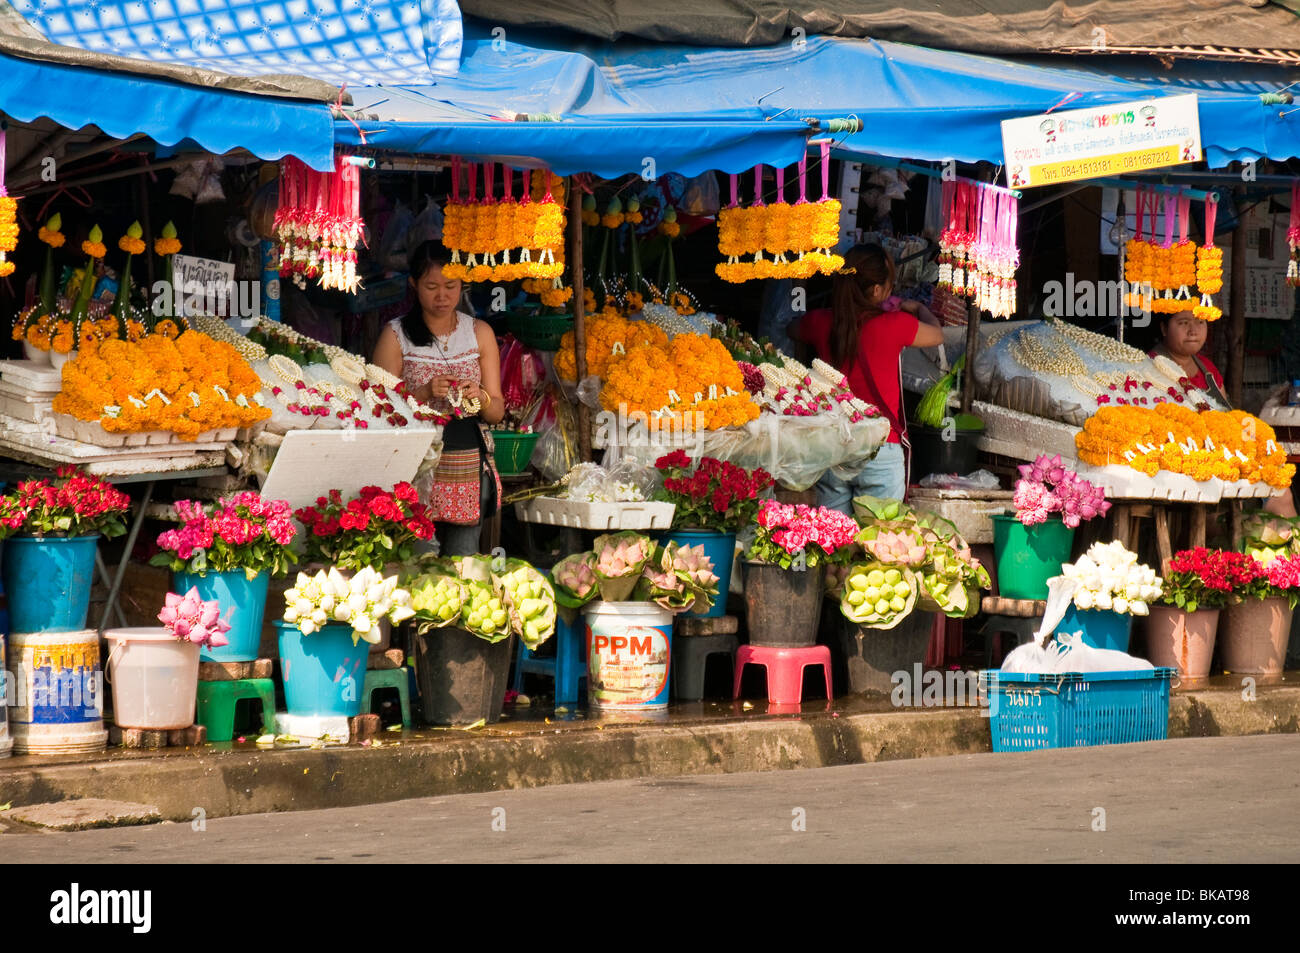 Flower vendors at marketplace near Chinatown and Ping River, Chiang Mai, Thailand. - Stock Image